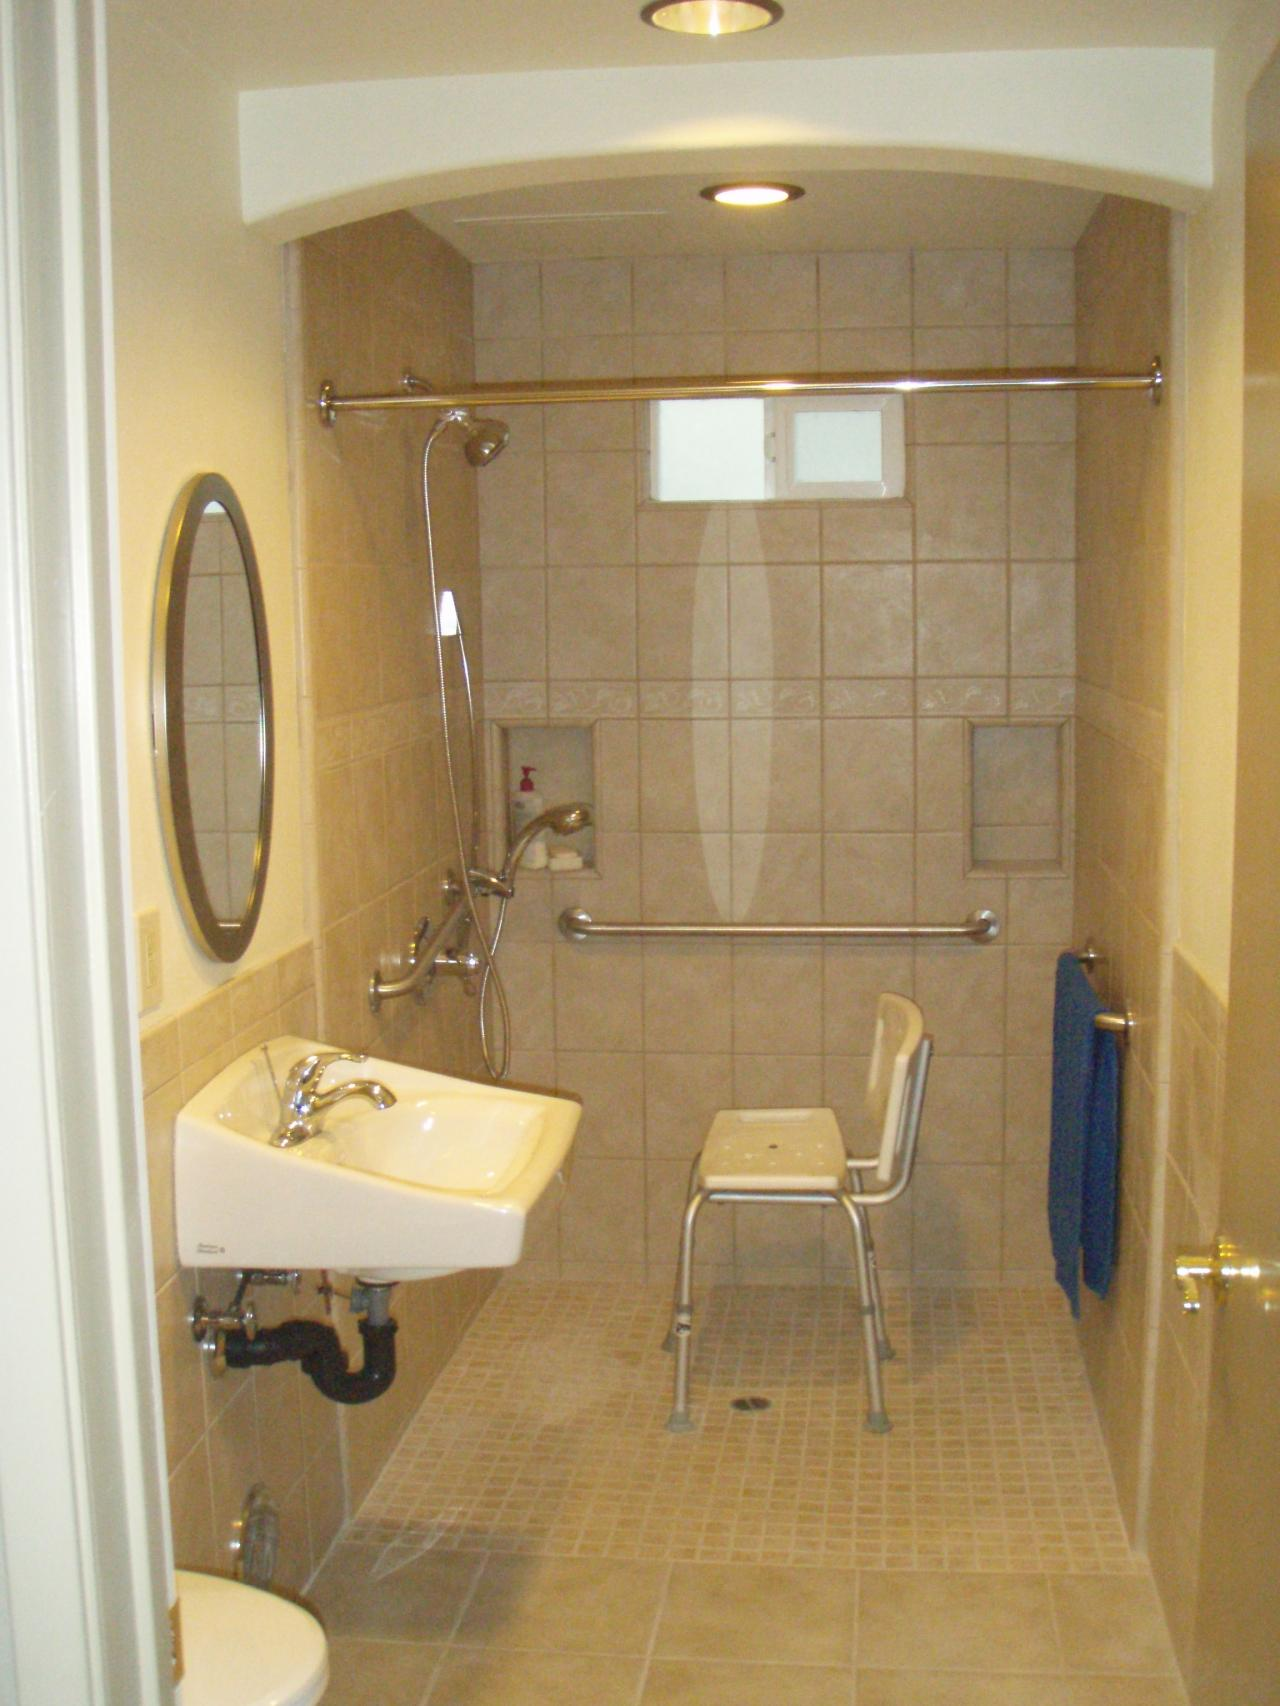 Bathroom designs for handicapped specs price release date redesign Bathroom shower designs with price